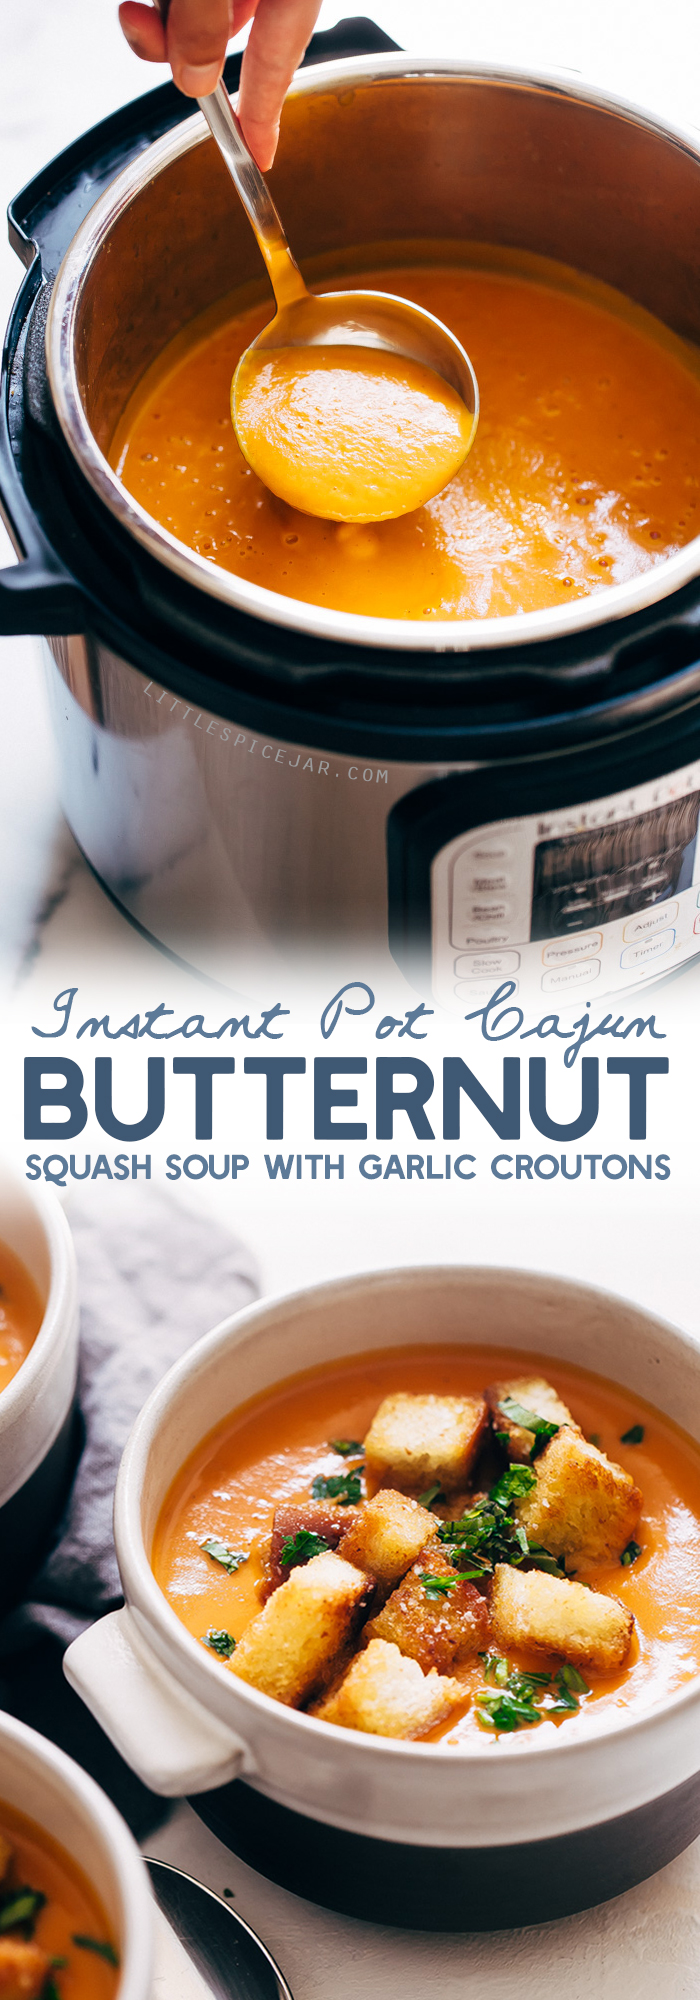 Instant Pot Cajun Butternut Squash Soup - a simple soup where you just toss it all into the instant pot and sit back! SO EASY AND SO DELISH! #instantpot #butternutsquashsoup #buttternutsquash #instapotsoup | Littlespicejar.com